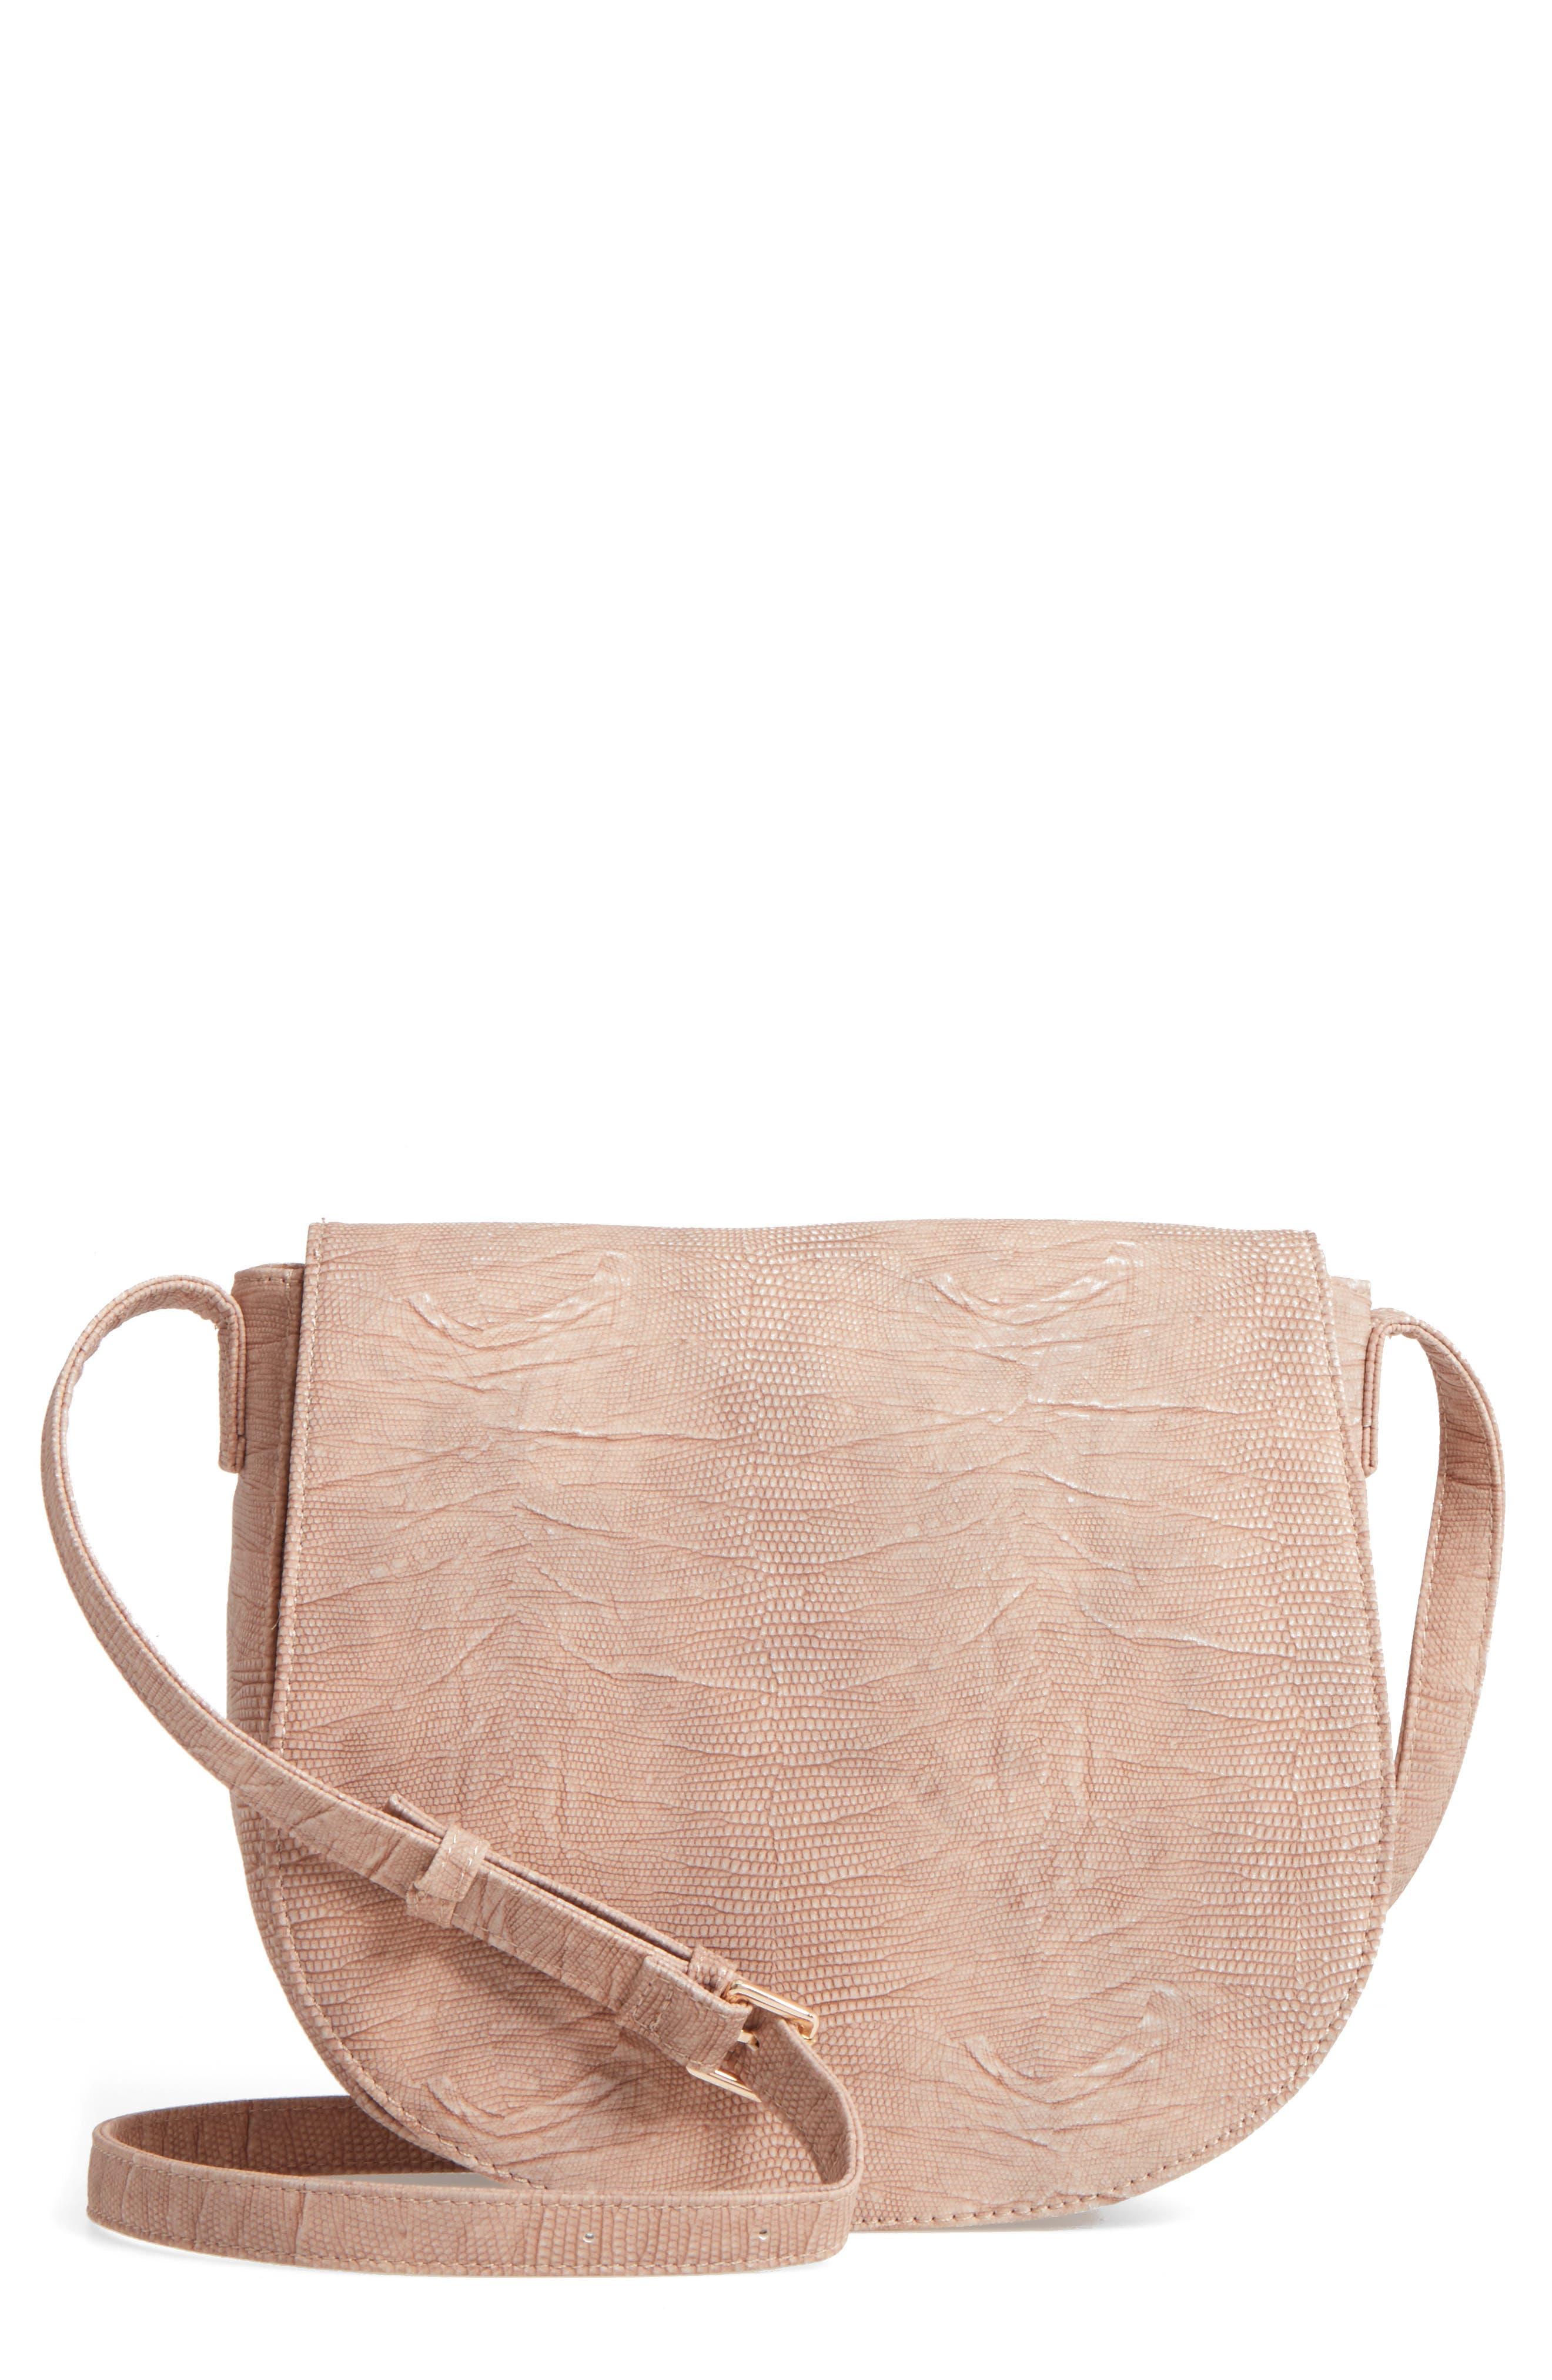 Sole Society Livvy Faux Leather Crossbody Saddle Bag